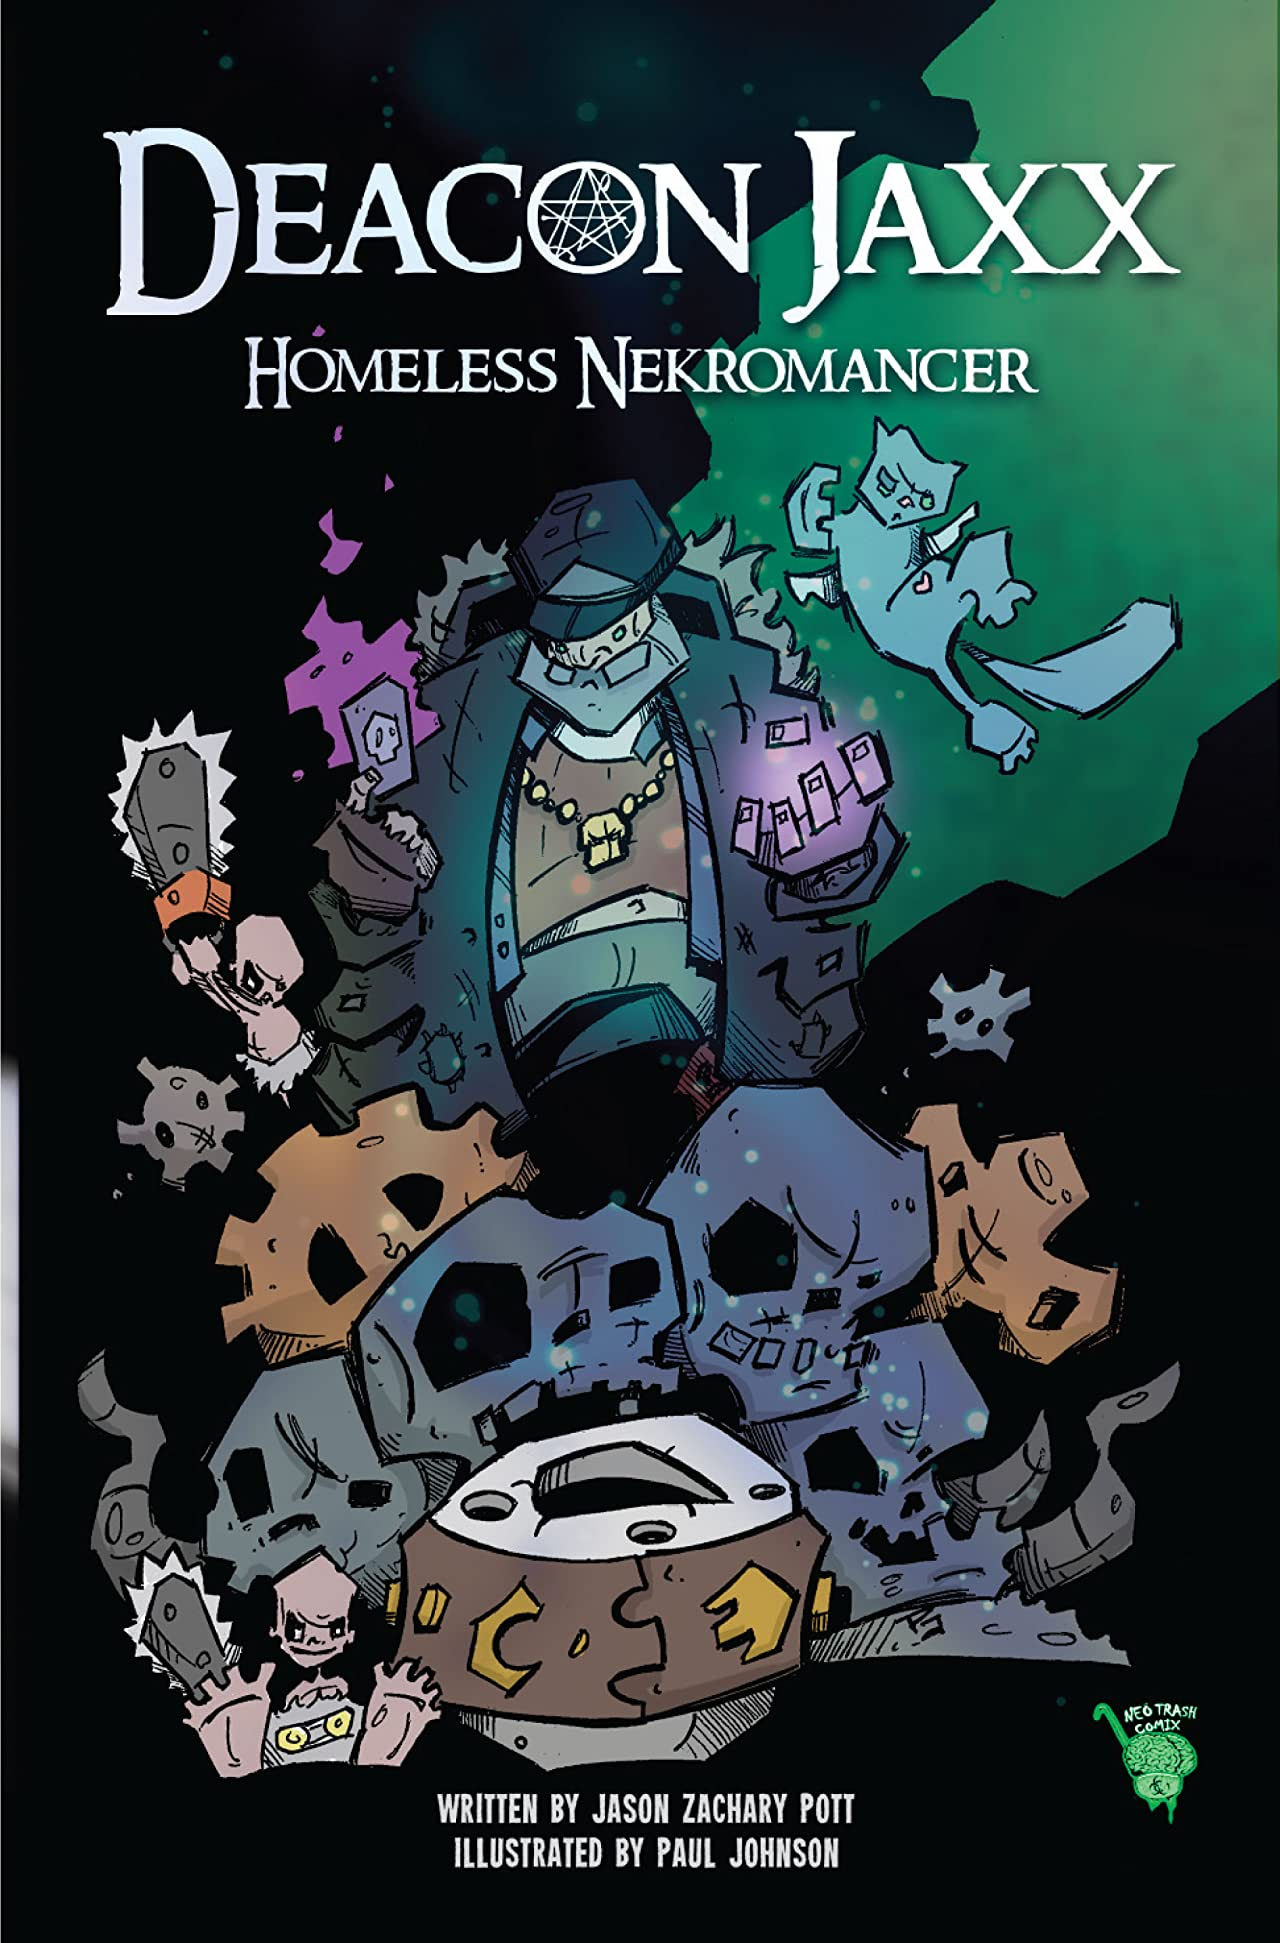 Deacon Jaxx Homeless Nekromancer #1